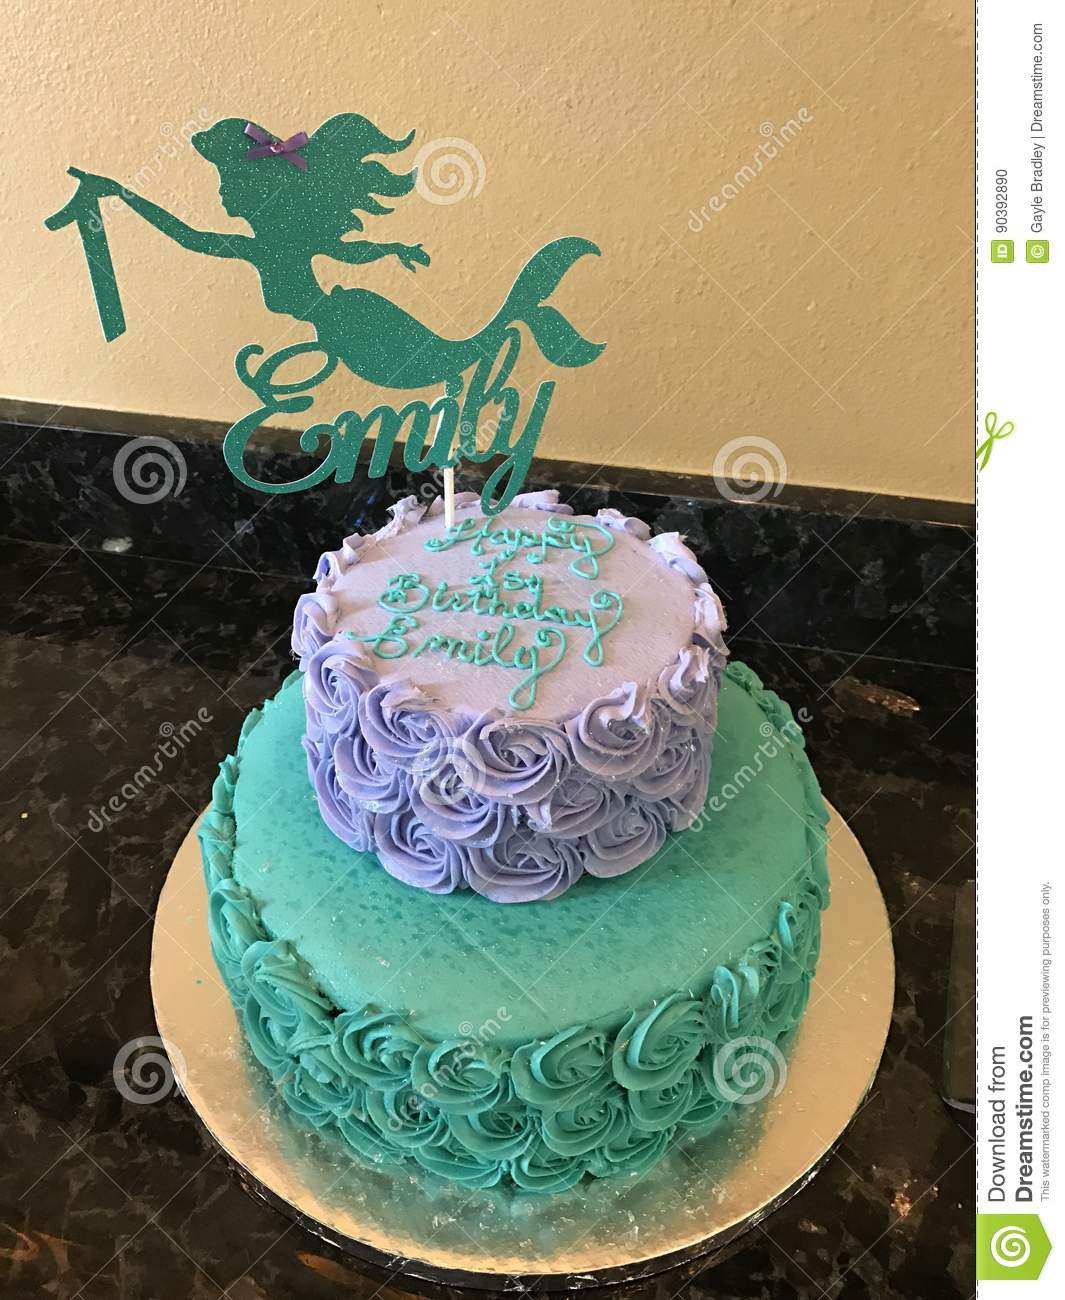 Surprising Mermaid Birthday Cake Stock Photo Image Of Emily Mermaid 90392890 Personalised Birthday Cards Bromeletsinfo